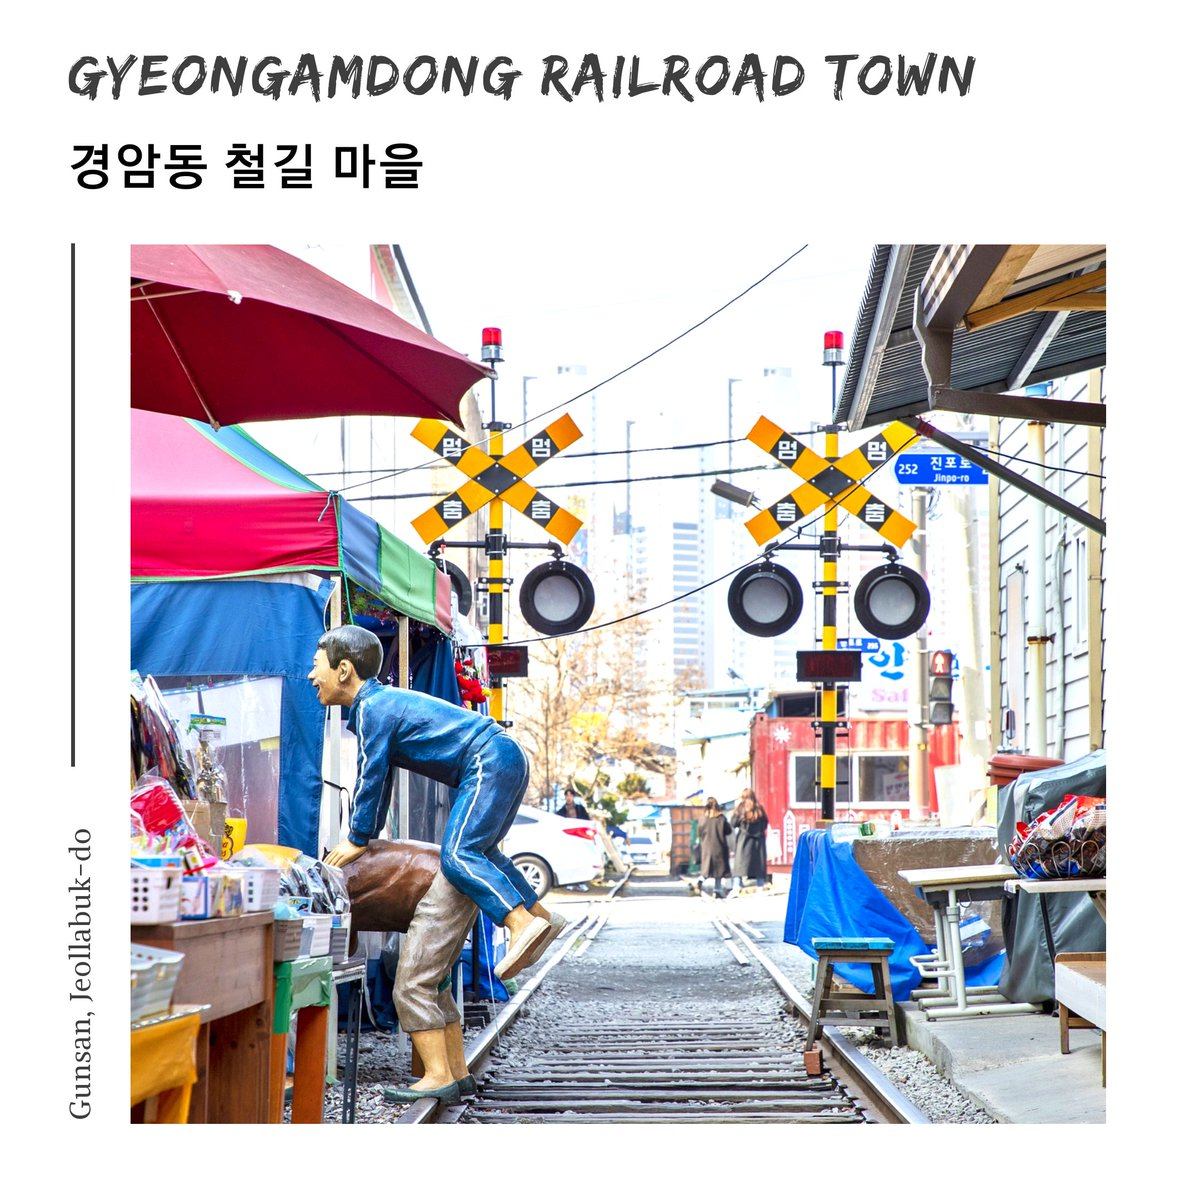 Gyeongamdong Railroad Town  경암동 철길 마을  You can walk the railroad and rent korean style school uniform. The place is also full of nostalgic with childhood shops. It was a colorful experience!  #경암동 #gyeongamdong #jeollabukdo #visitkorea #explorekorea #imagineyourkoreapic.twitter.com/oSUtcjQ2Dr